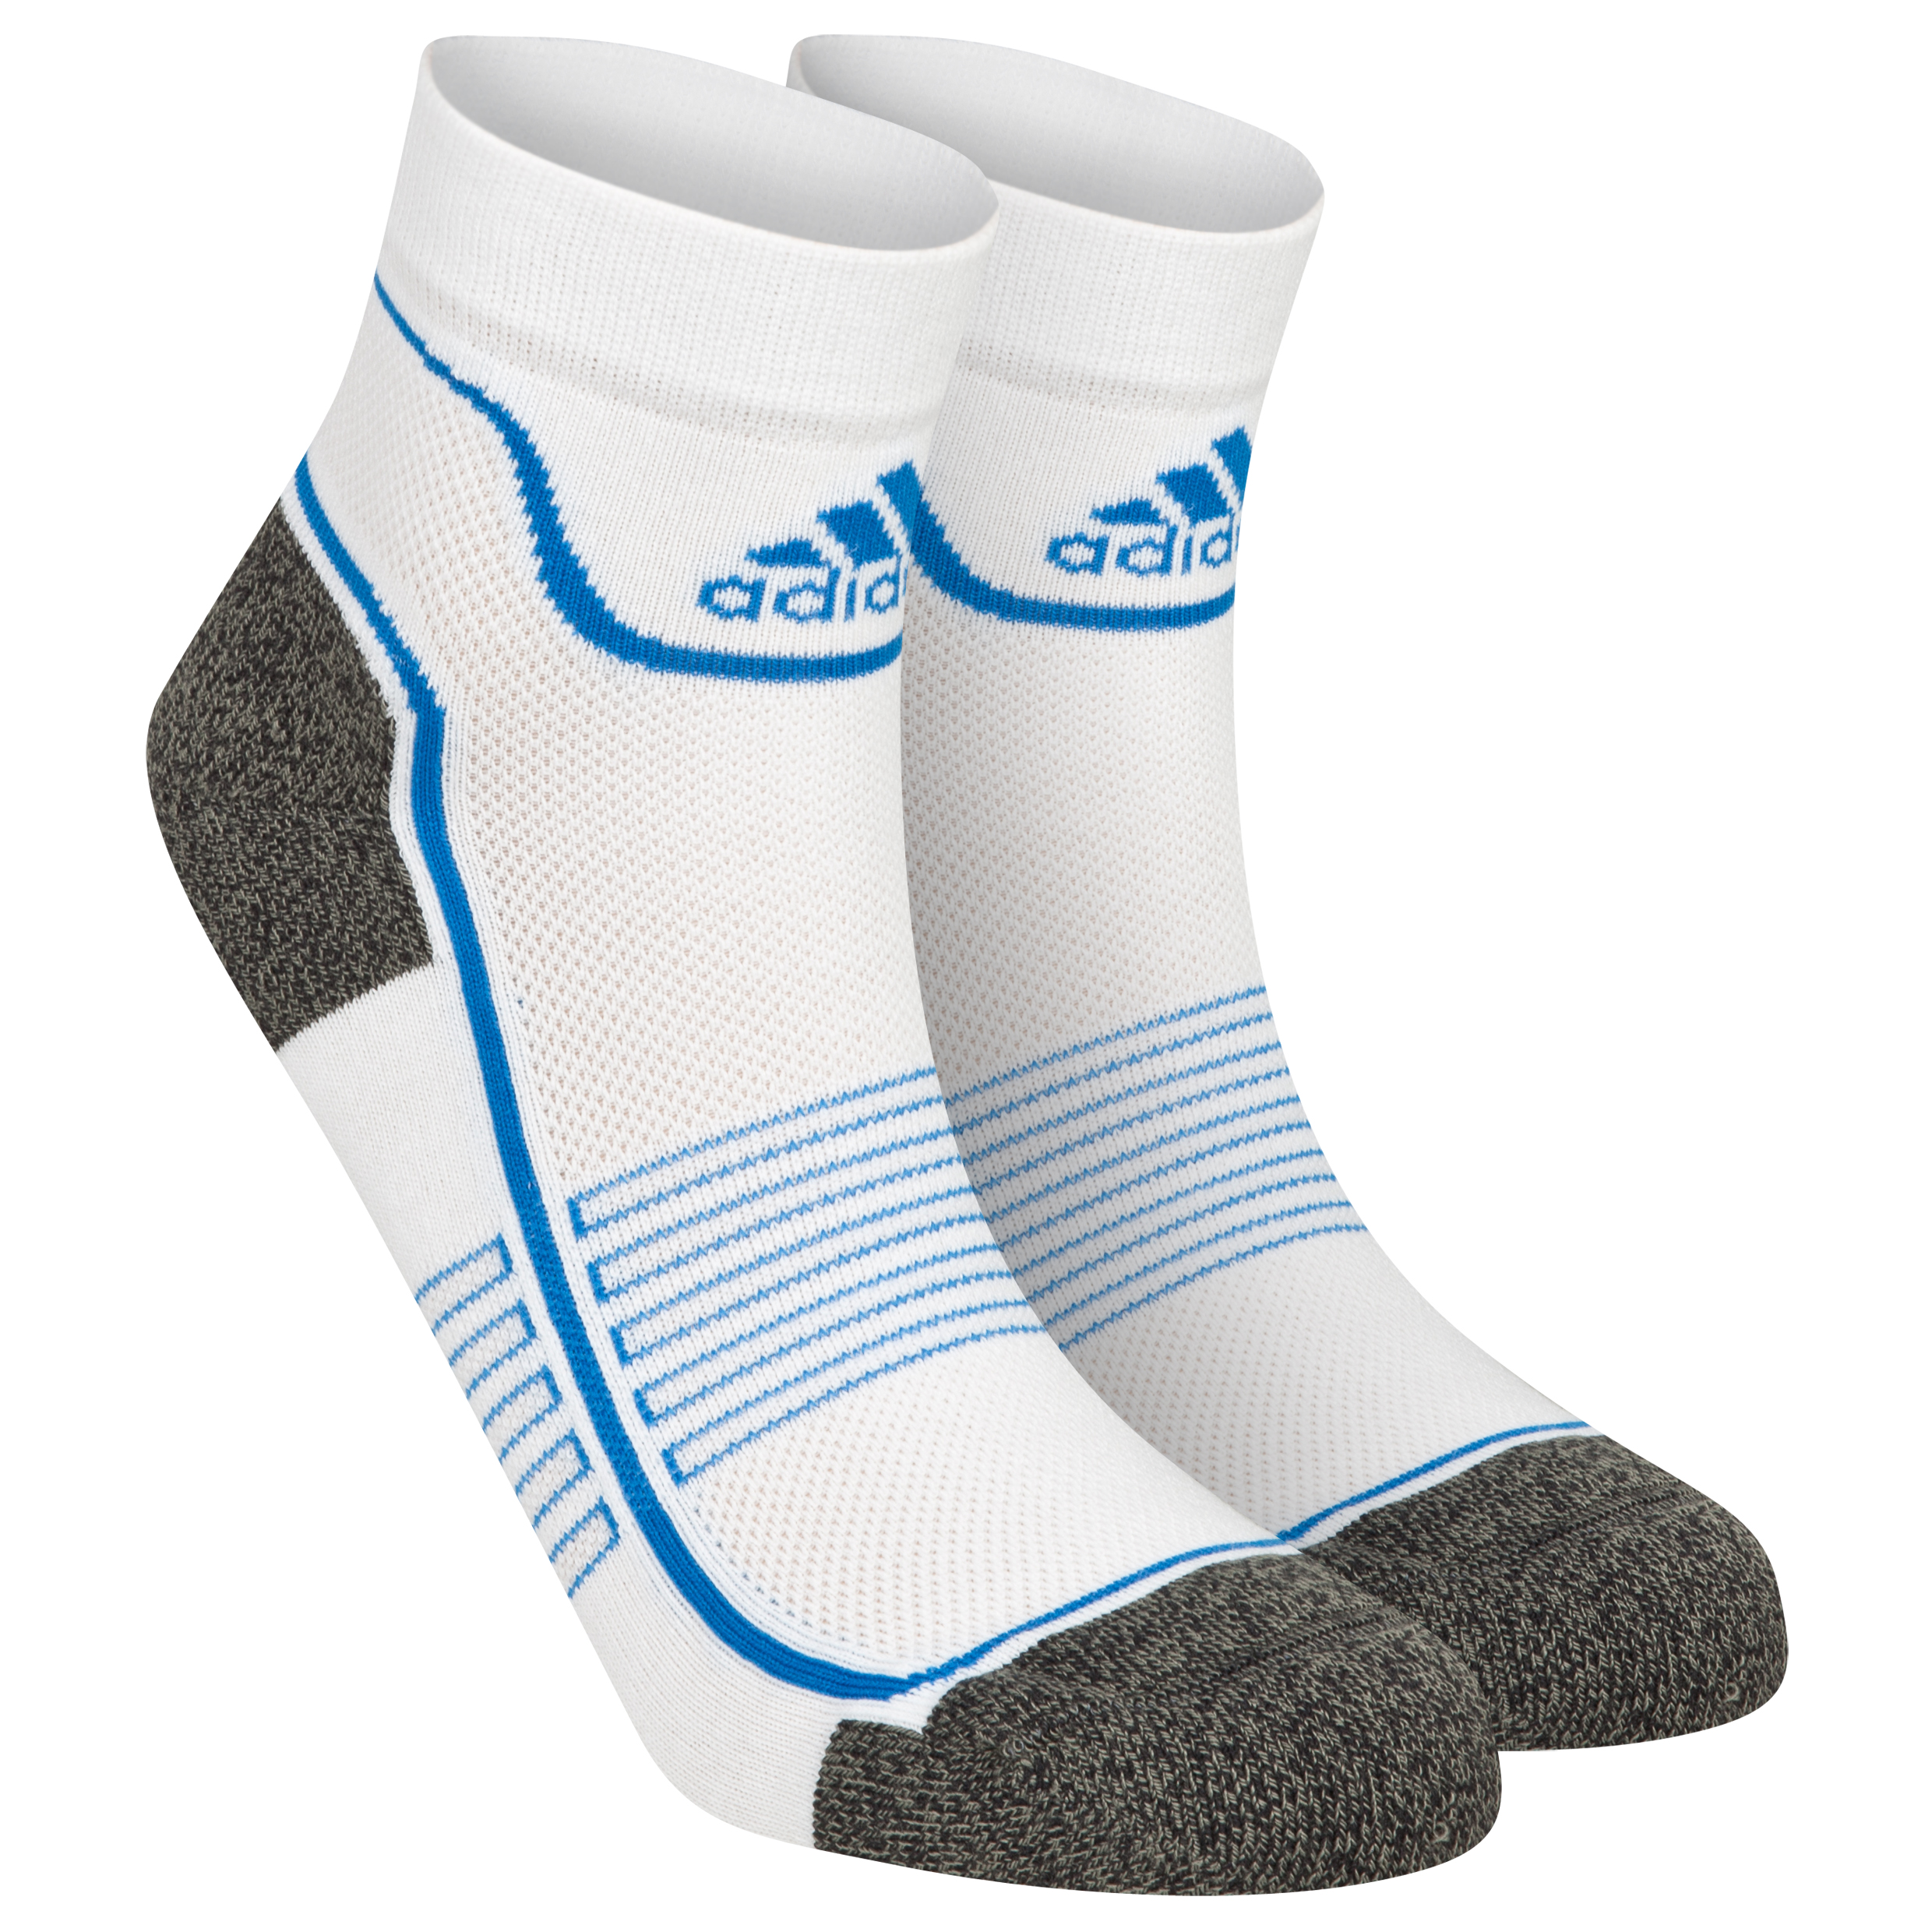 adidas FT Ankle 1pack Sock - White/Dark Grey/Prime Blue